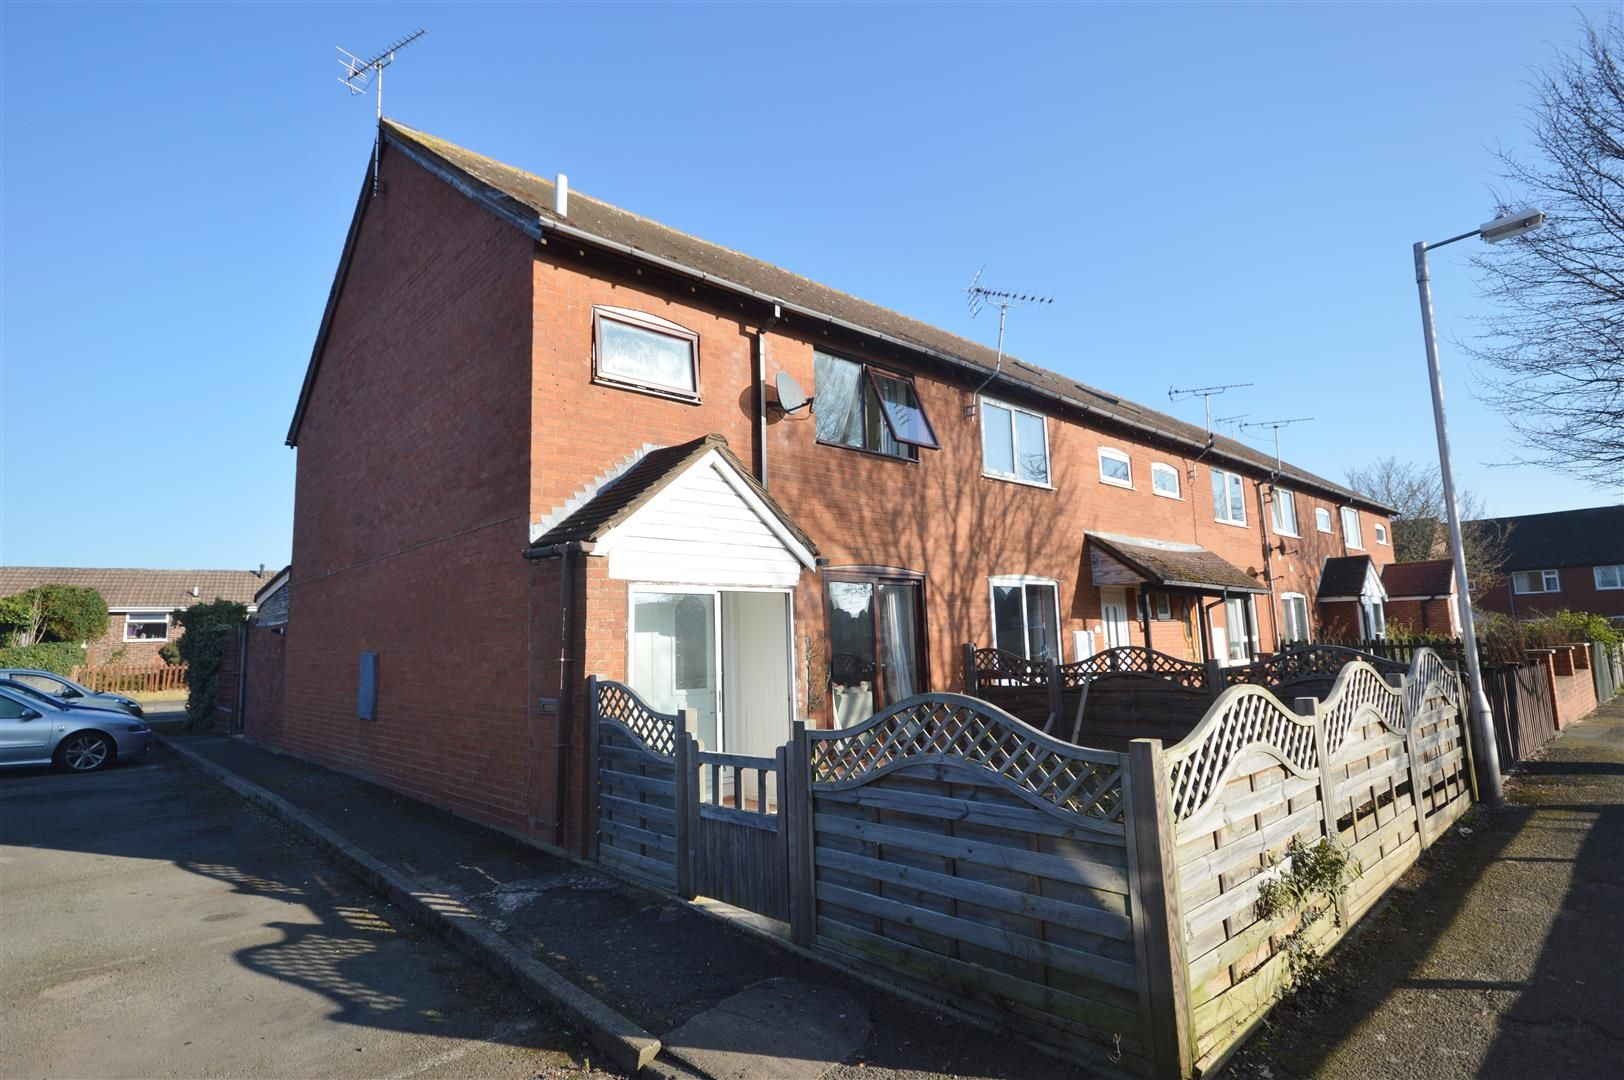 3 bed end-of-terrace for sale in Leominster - Property Image 1